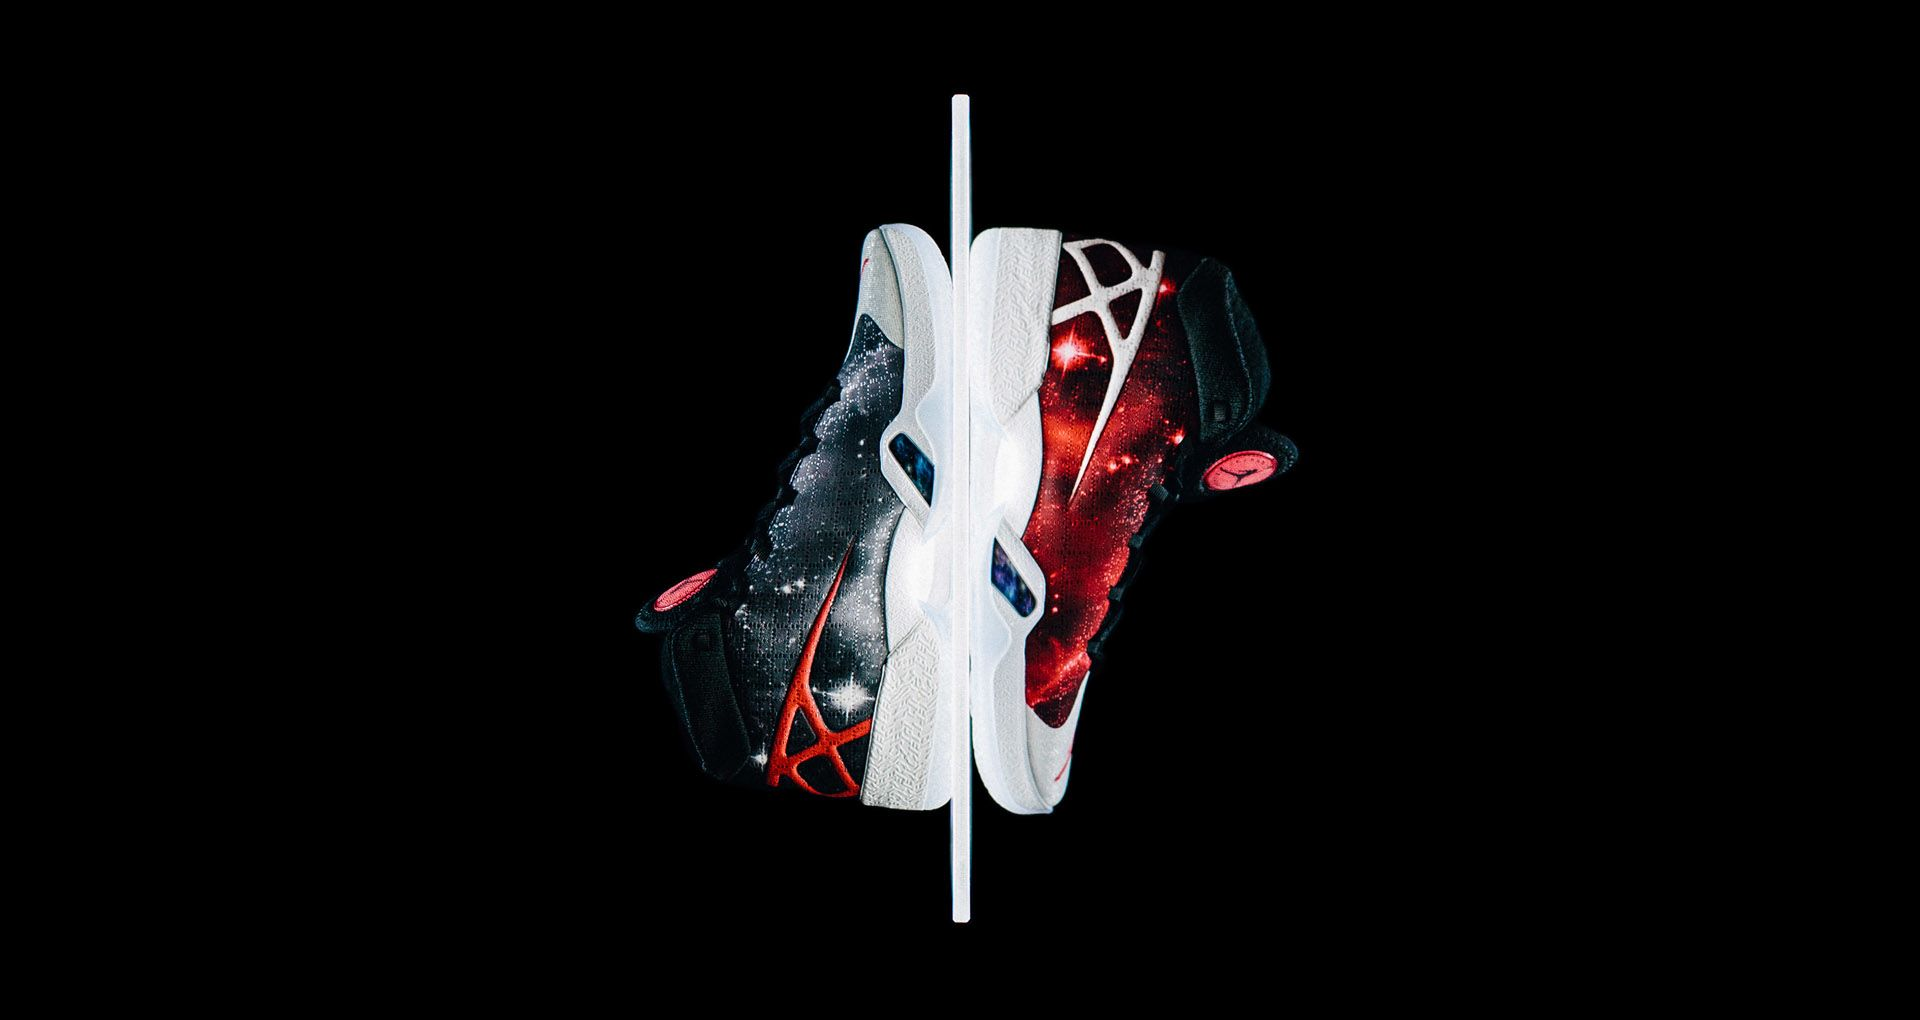 1ceffdcb01a5 2016 Jordan Brand Classic Collection. Nike+ SNKRS